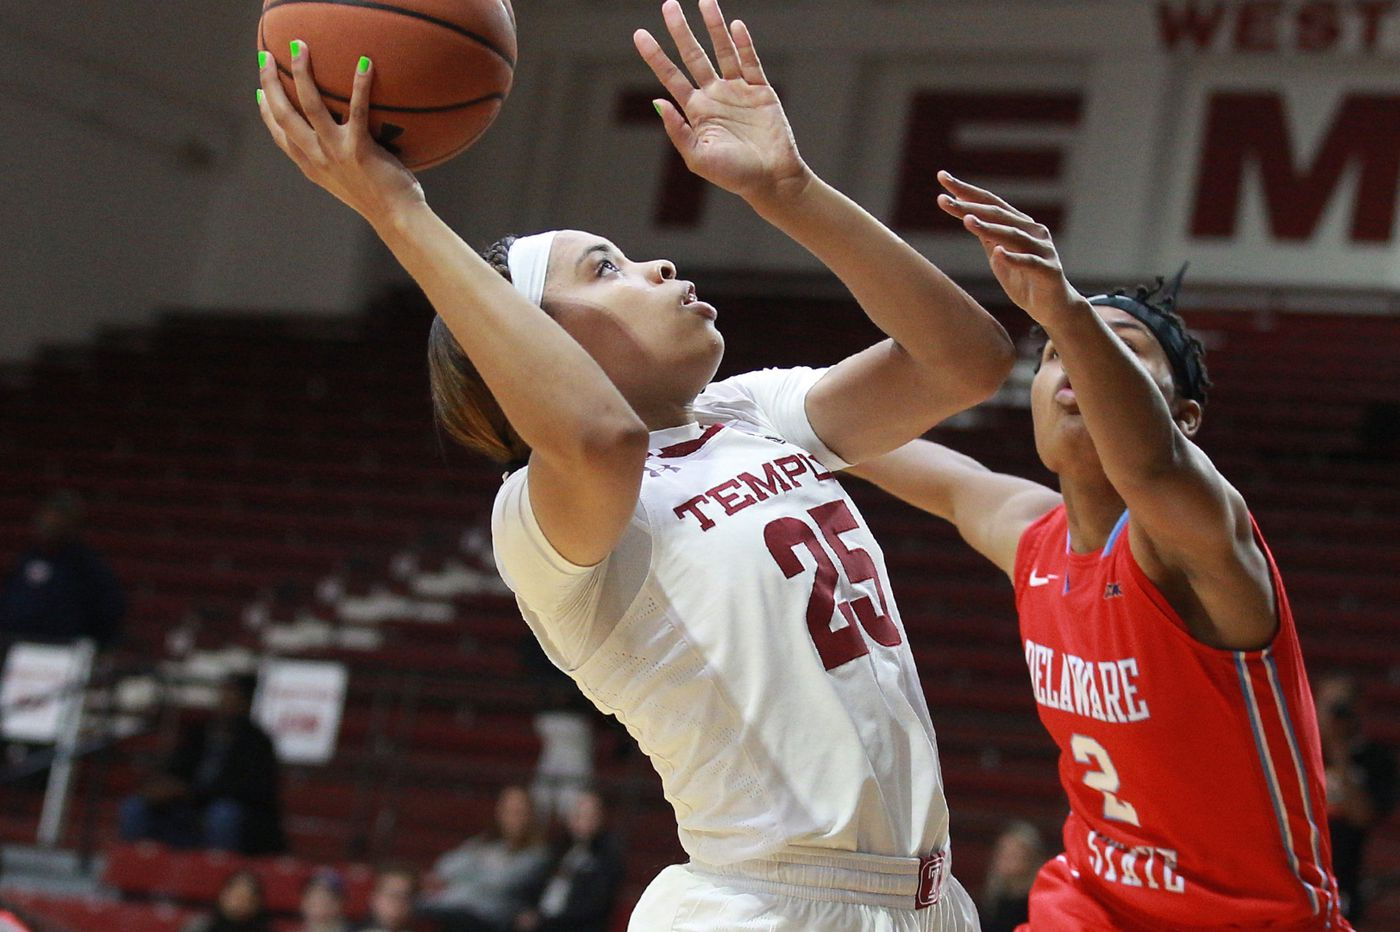 Women's college basketball: Going through contenders for City Six player of the year